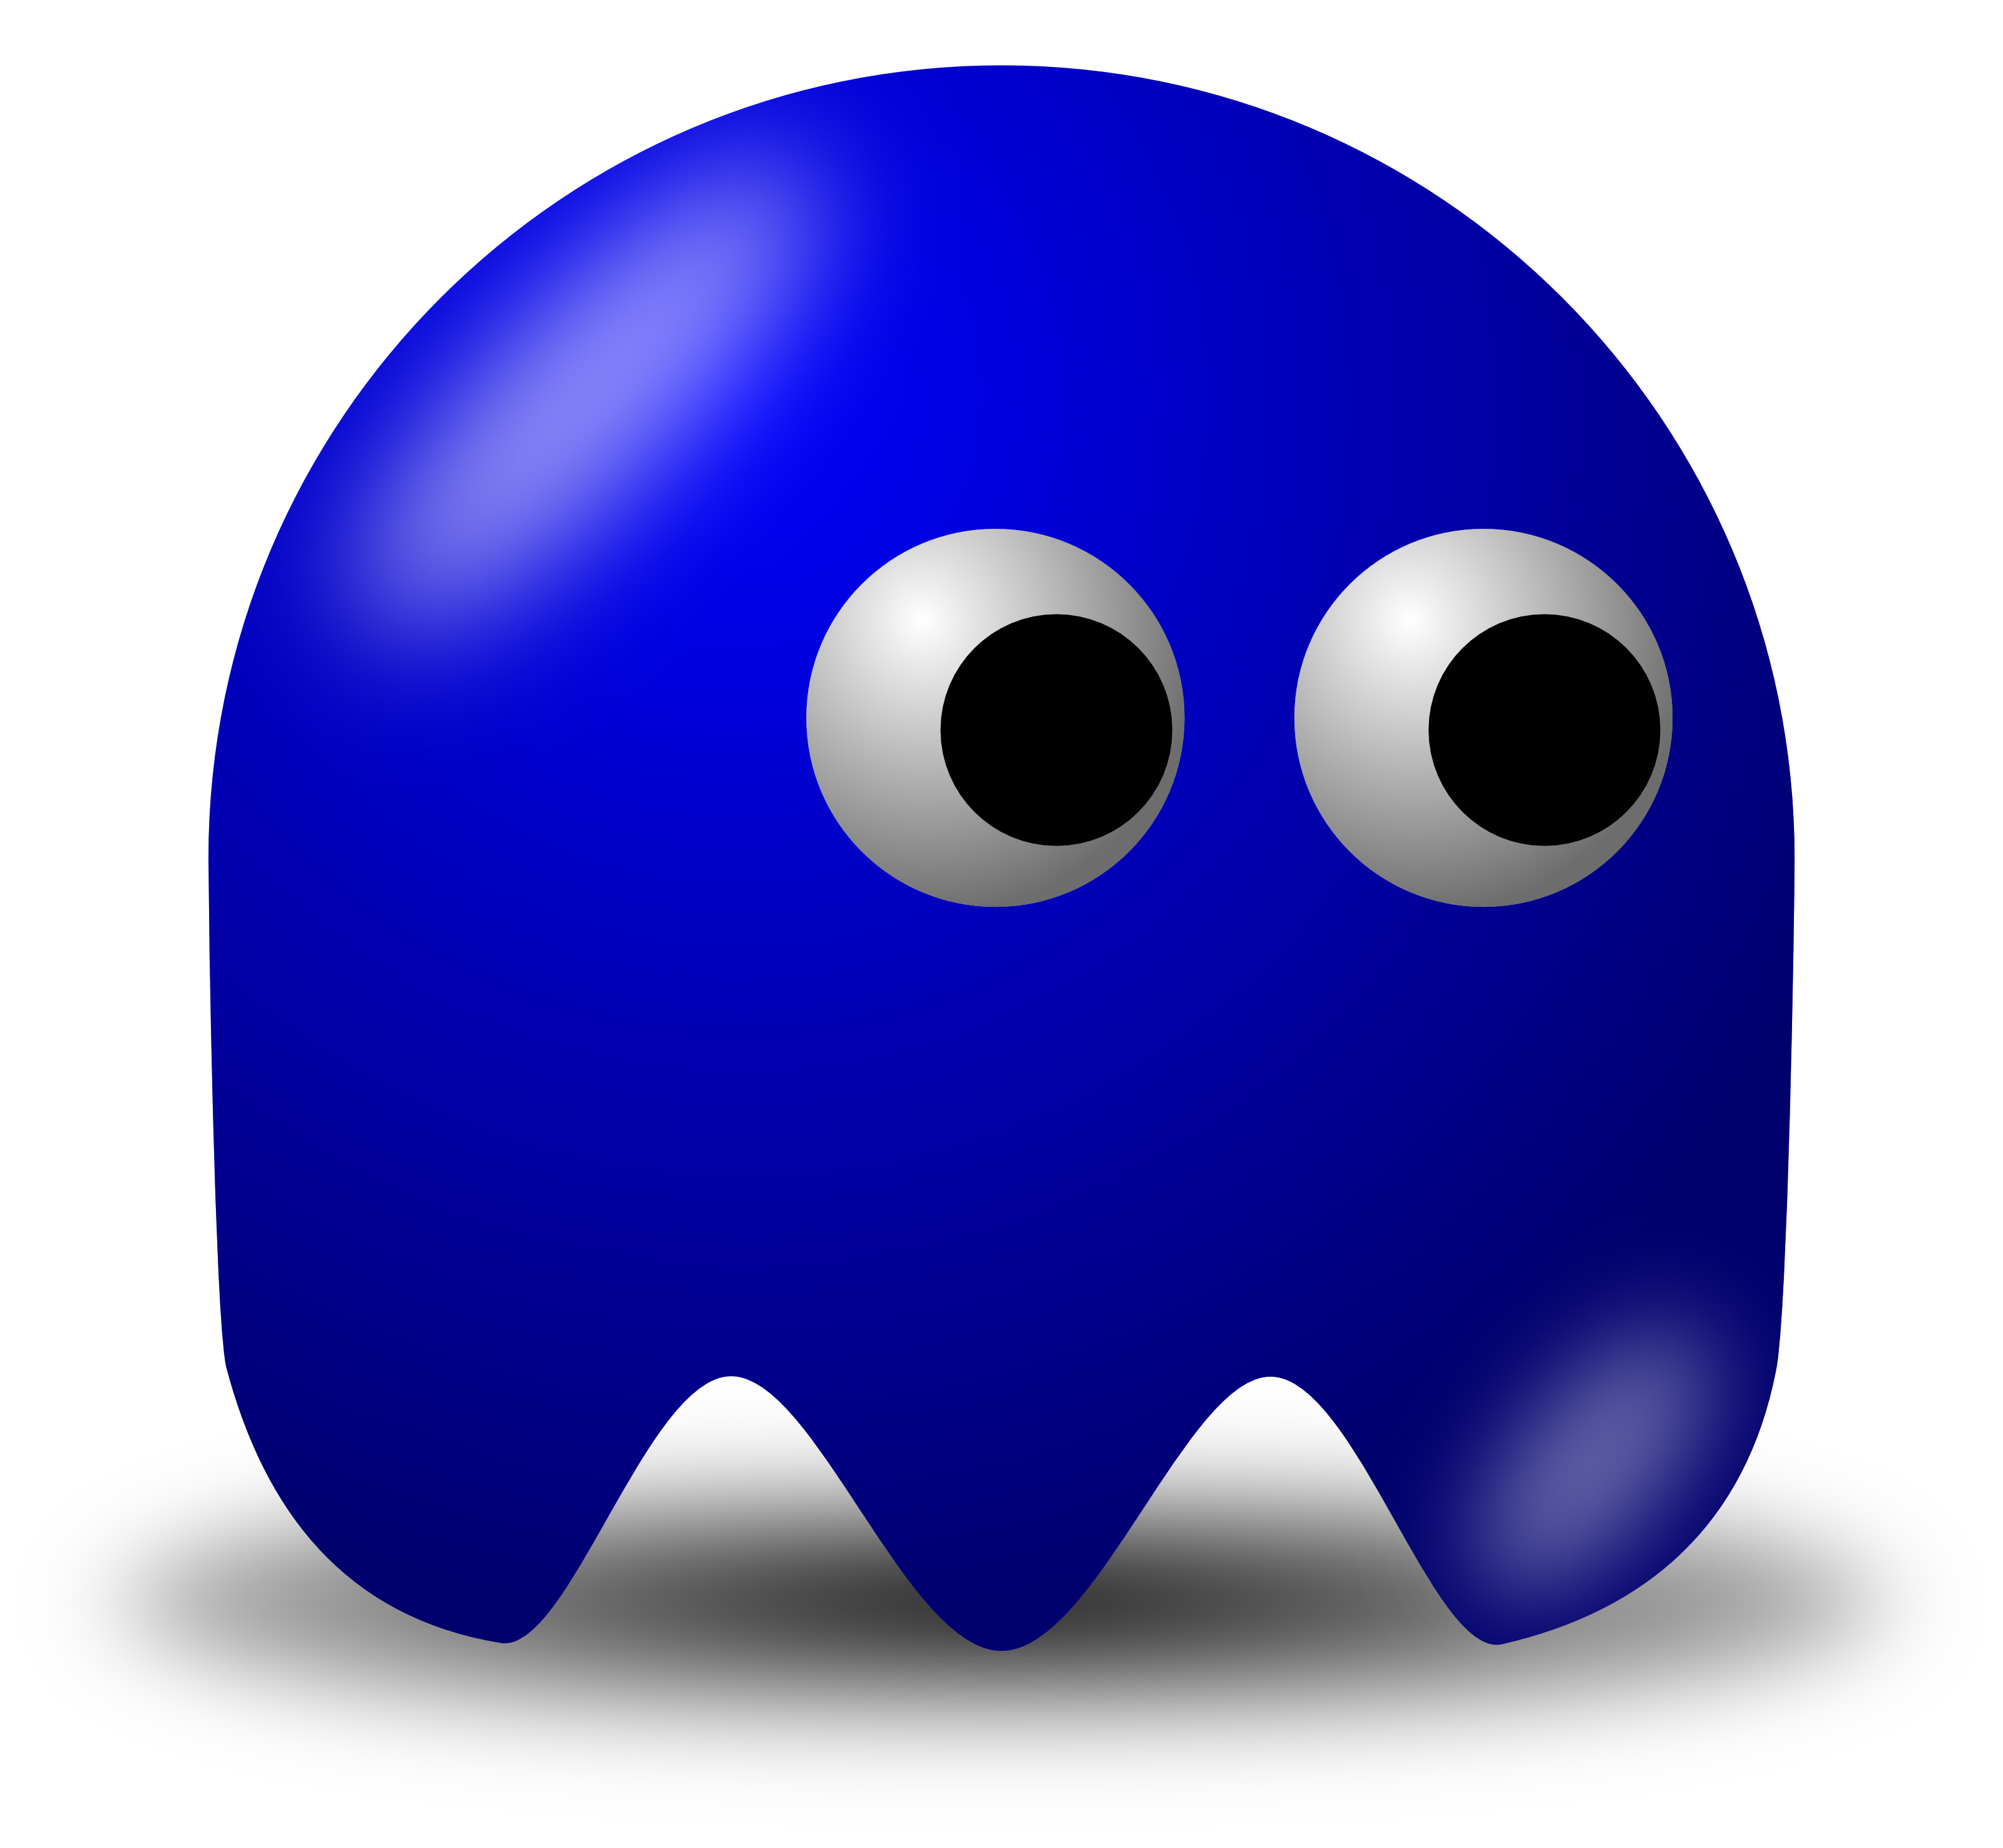 Clipart for color blue.